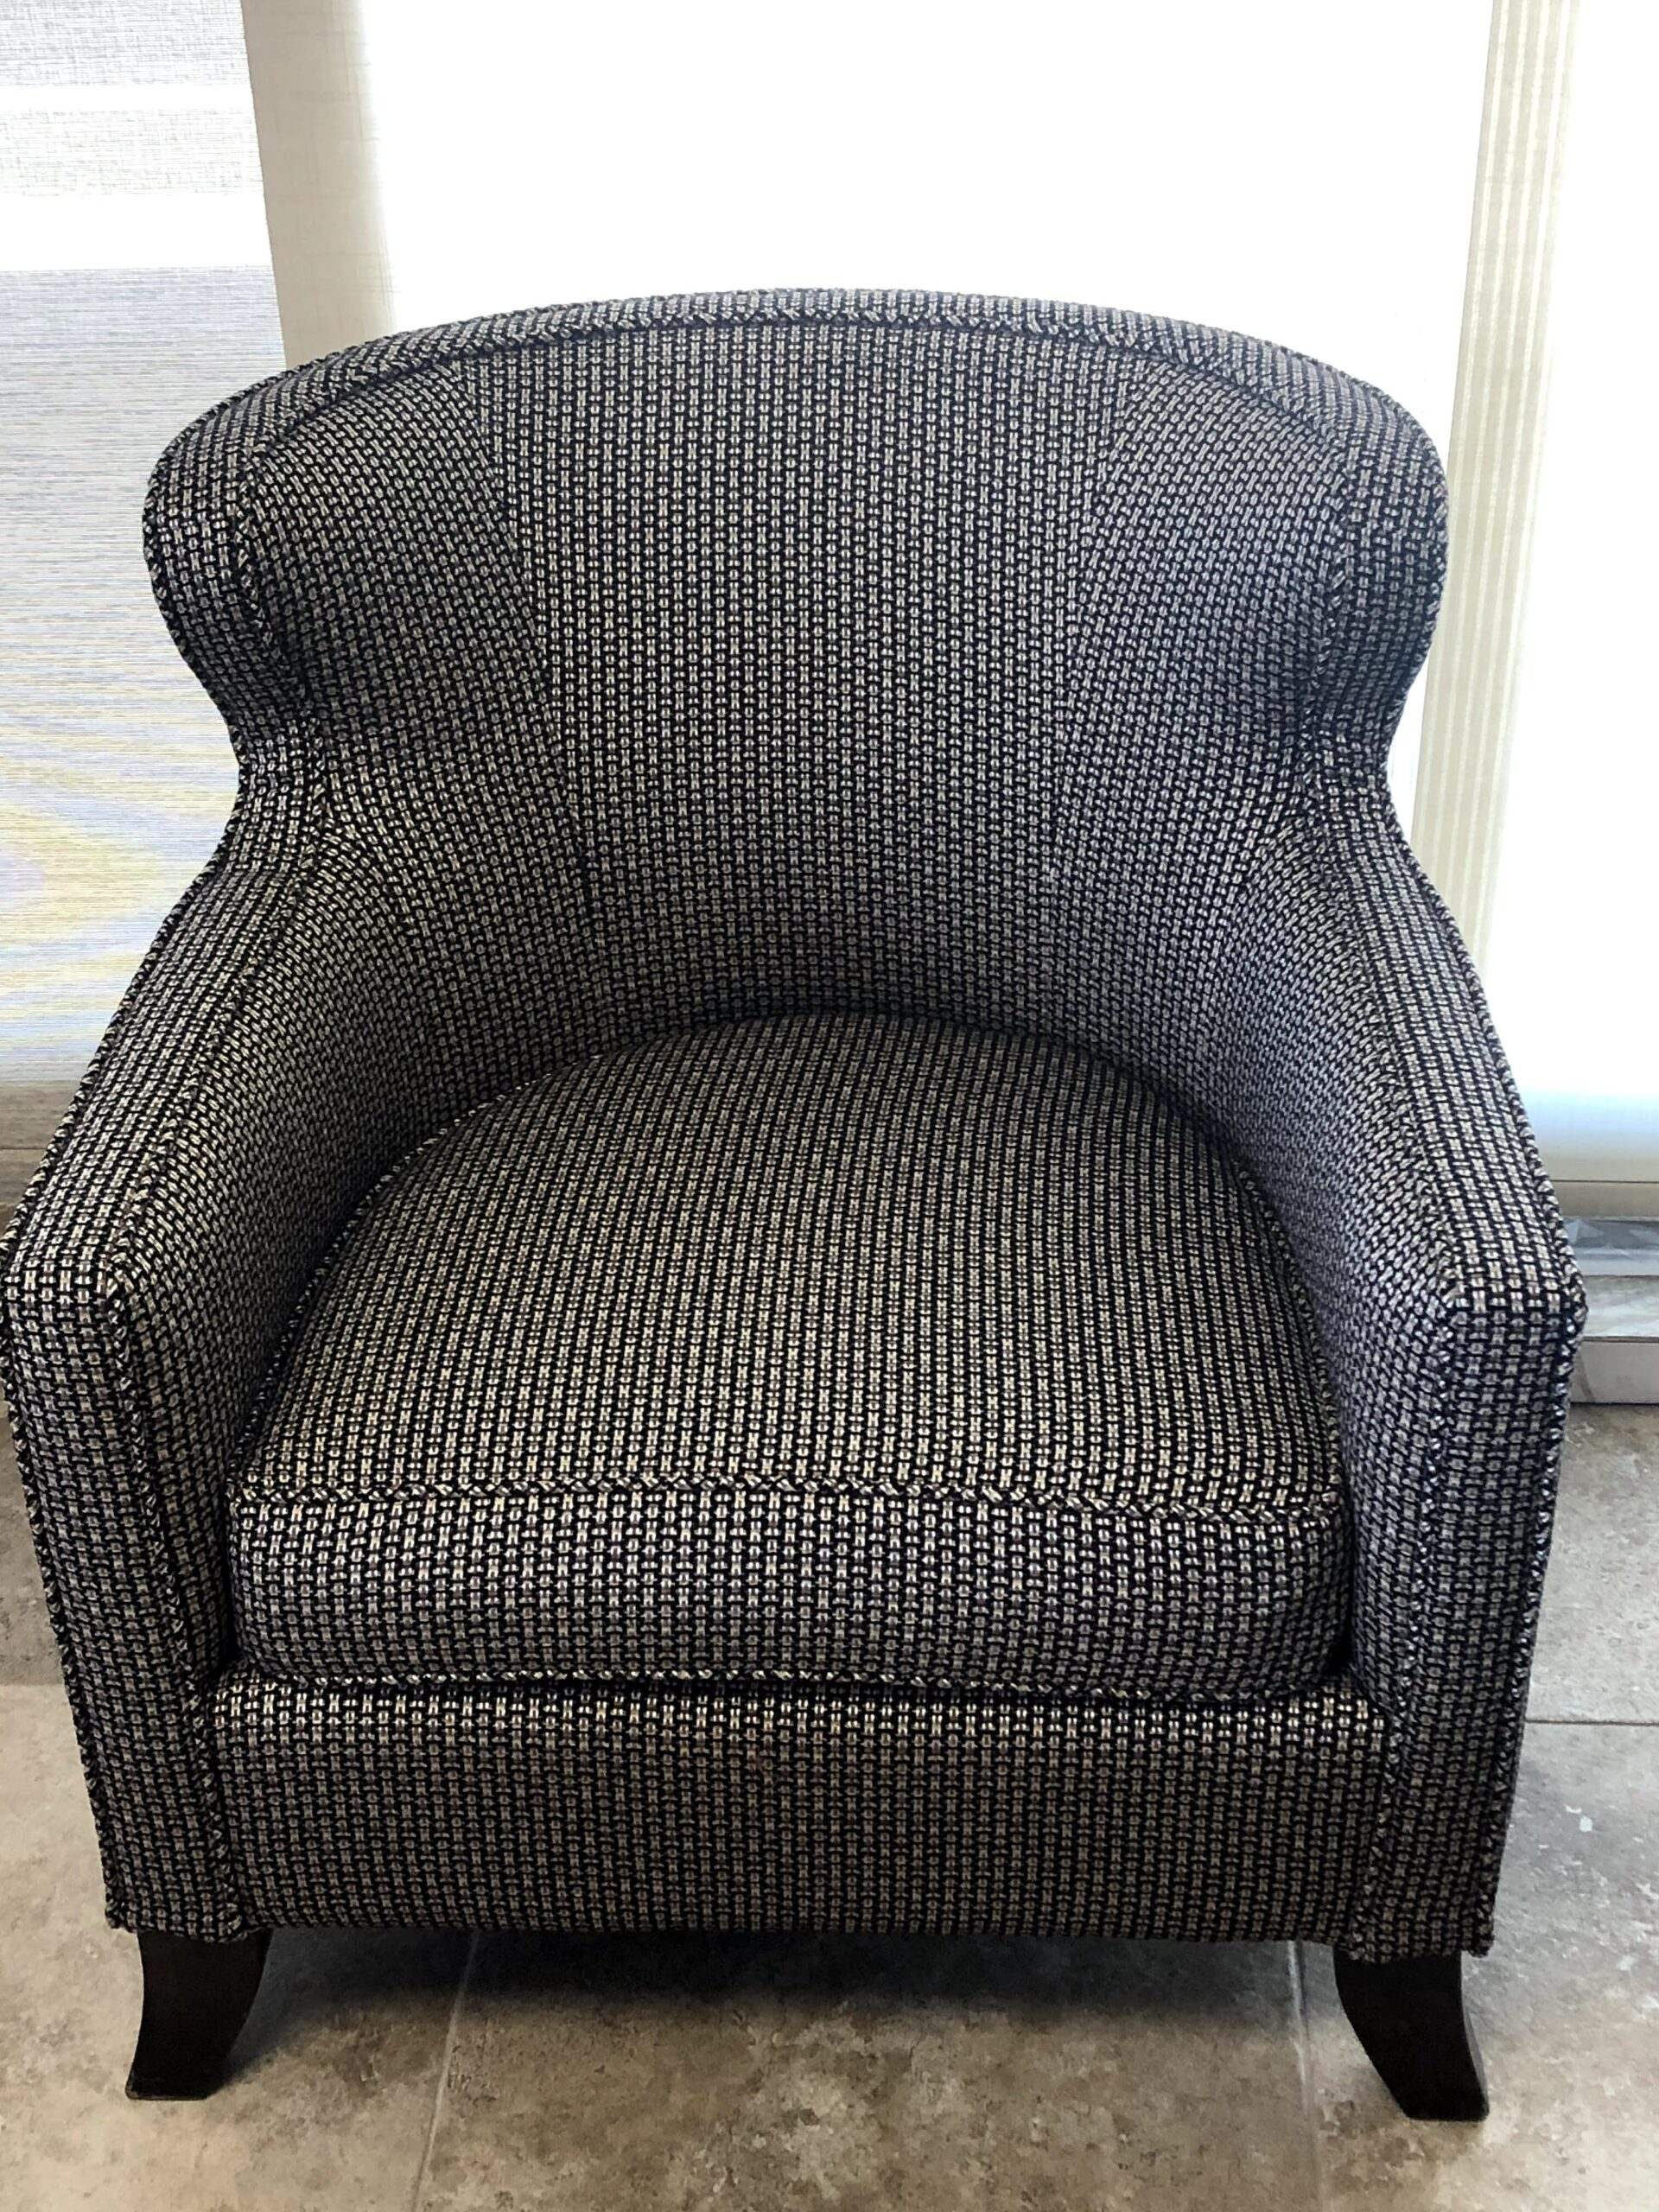 Black chair $175.00